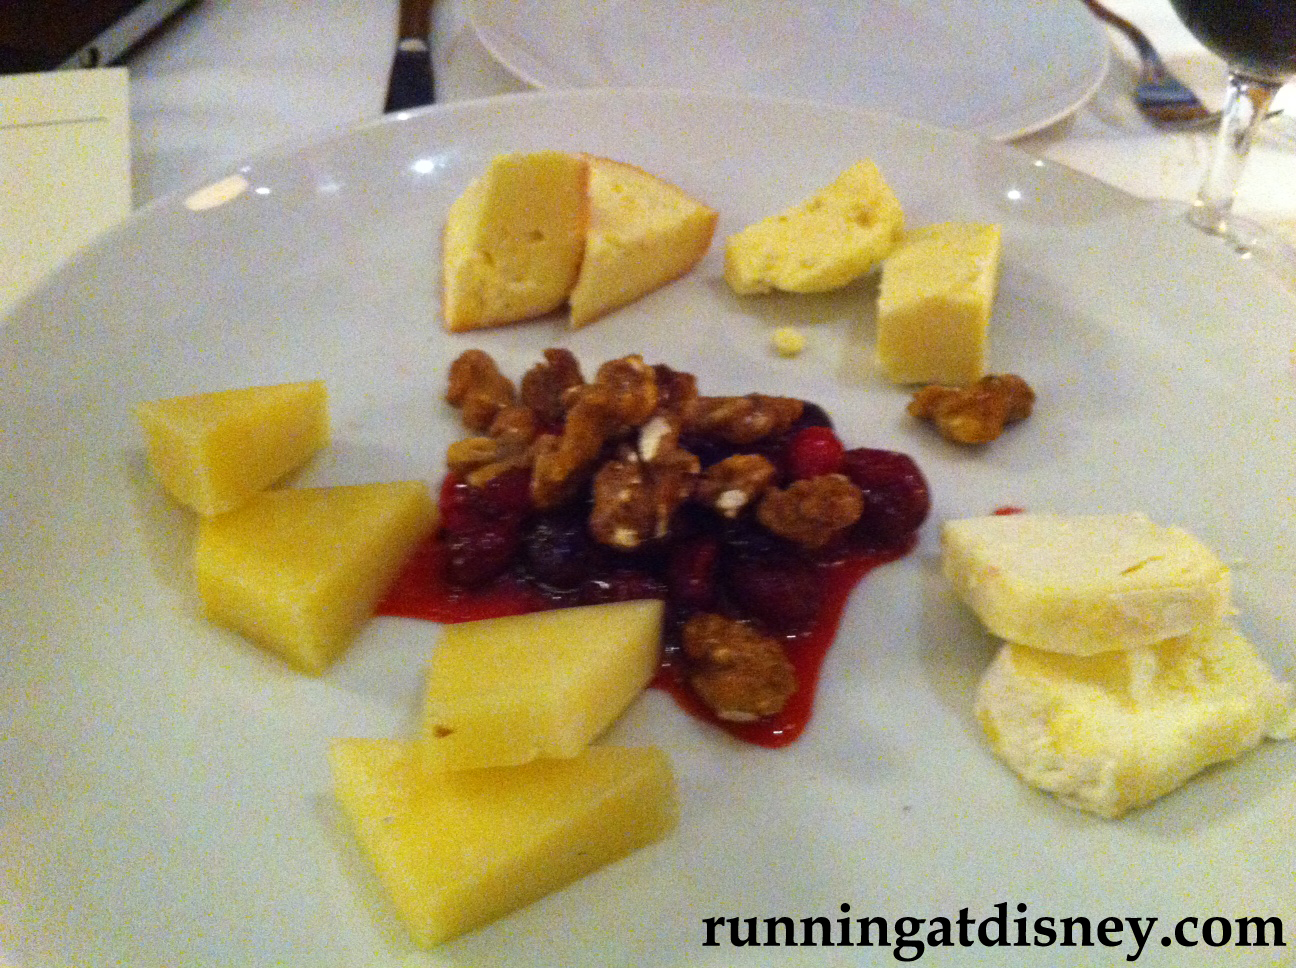 Cheese selection with a Cranberry Walnut Chutney